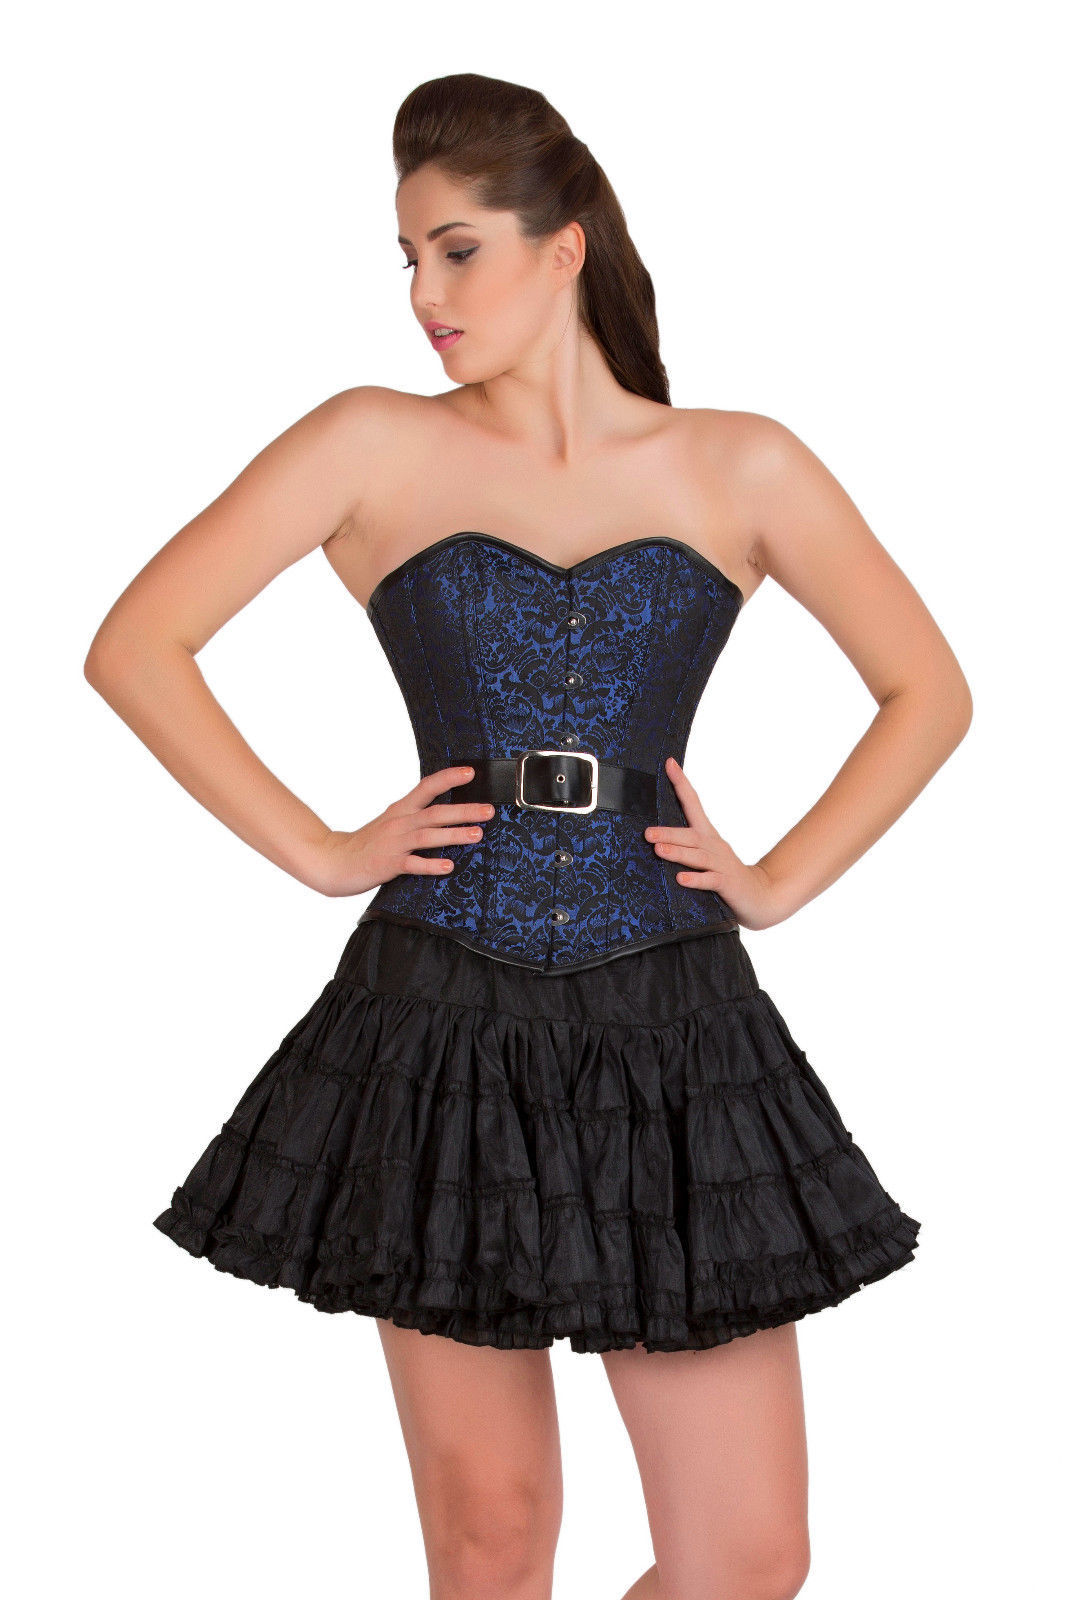 621041594a6 57. 57. Previous. Blue Black Brocade Goth Burlesque Overbust Top   Tissue  Tutu Skirt Corset Dress